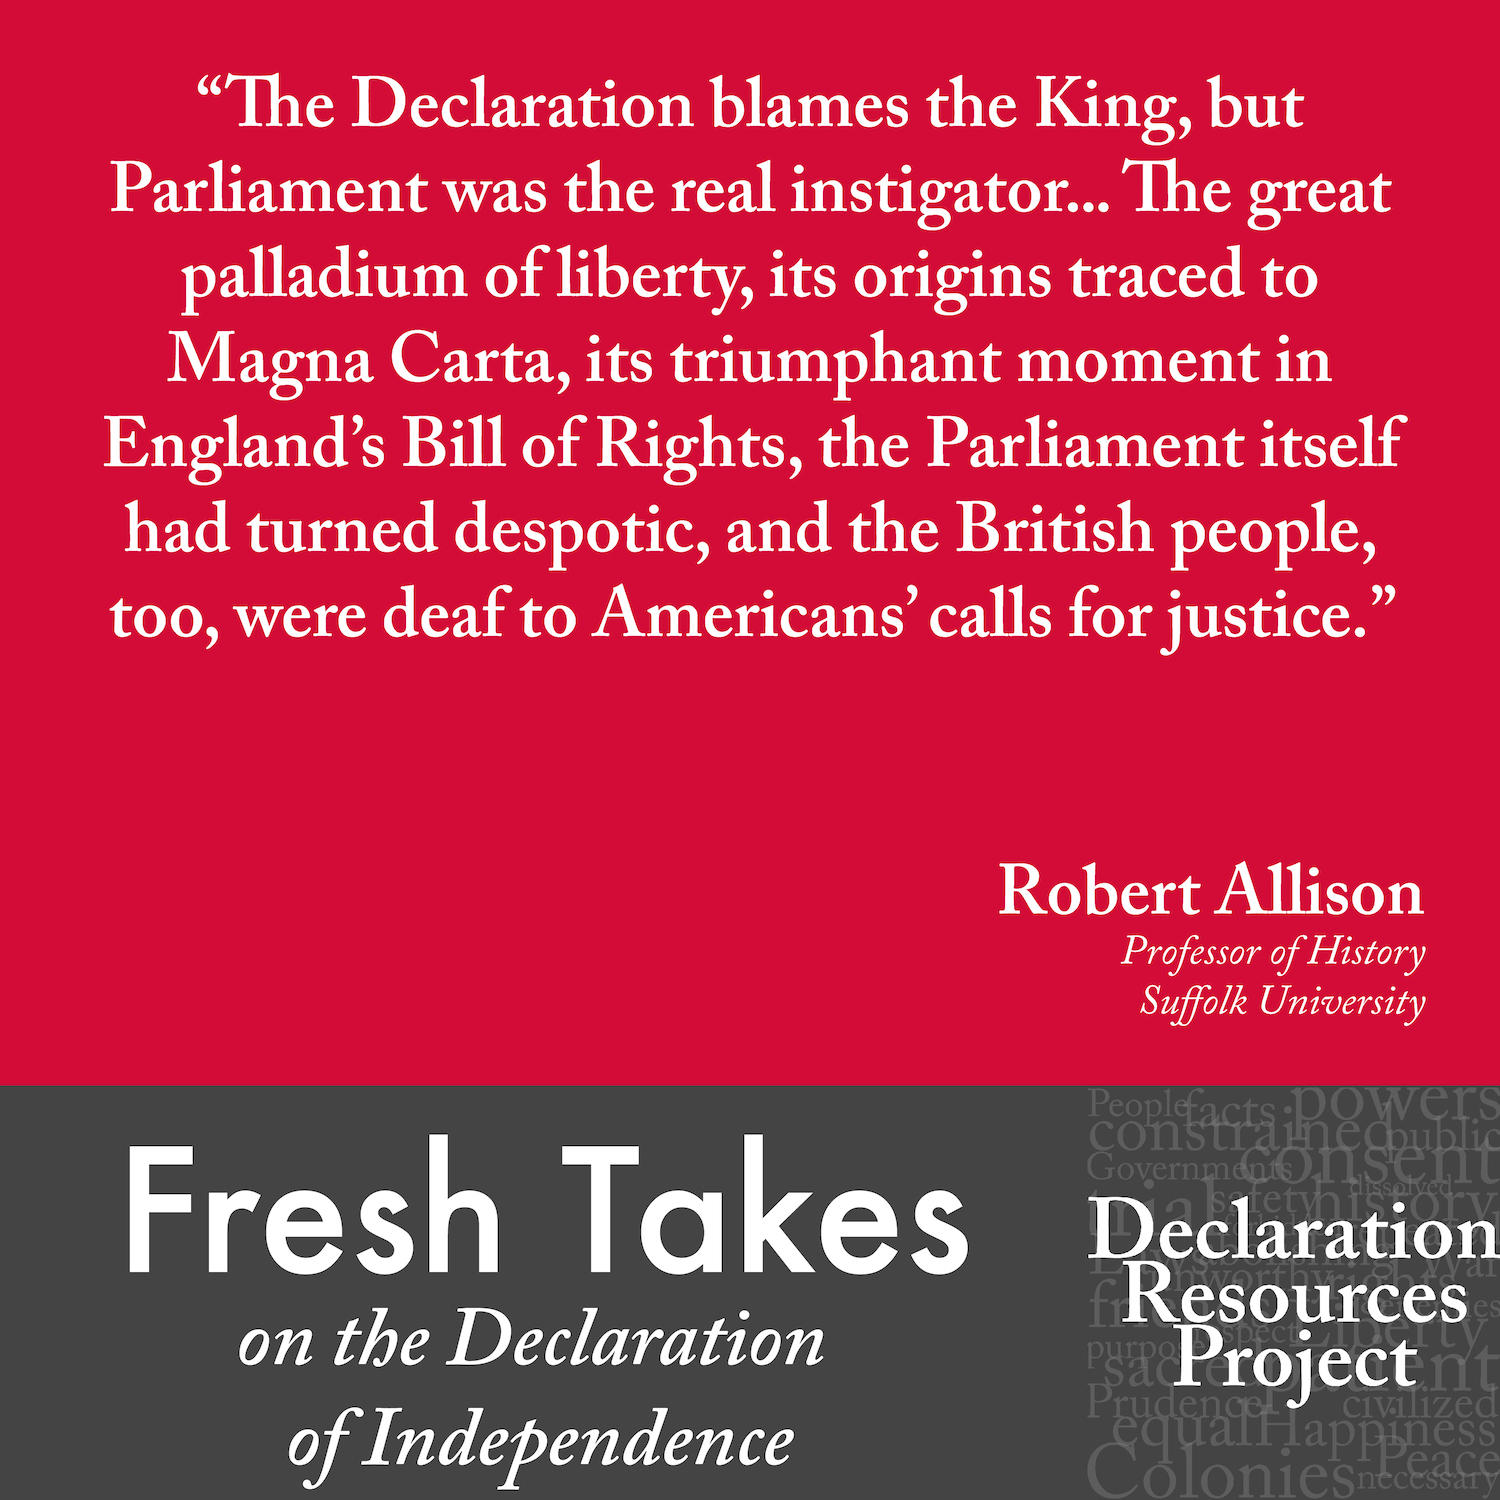 Robert Allison's Fresh Take on the Declaration of Independence